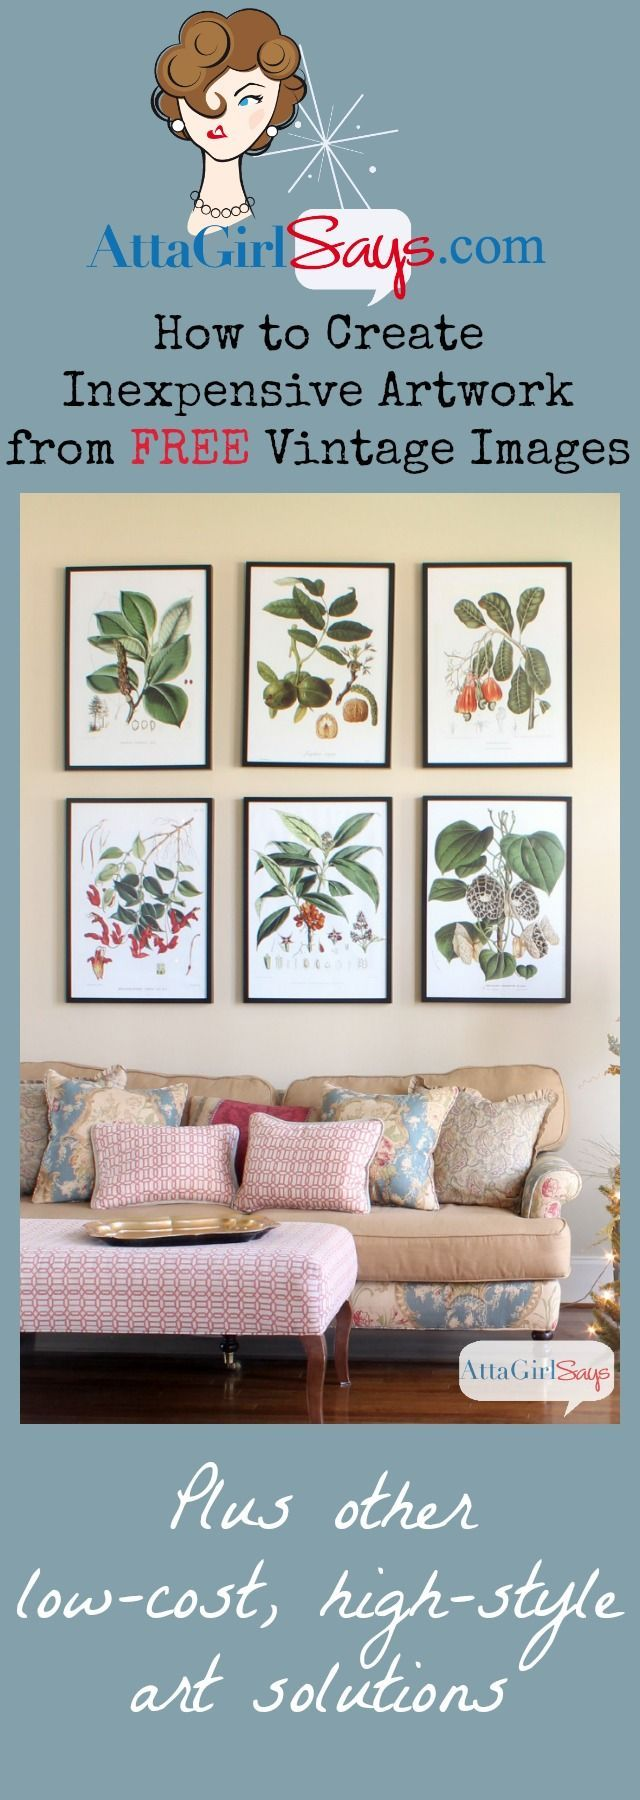 pinned more than 1000 times creatve inexpensive artwork with vintage botanical prints - 1000 Free Prints